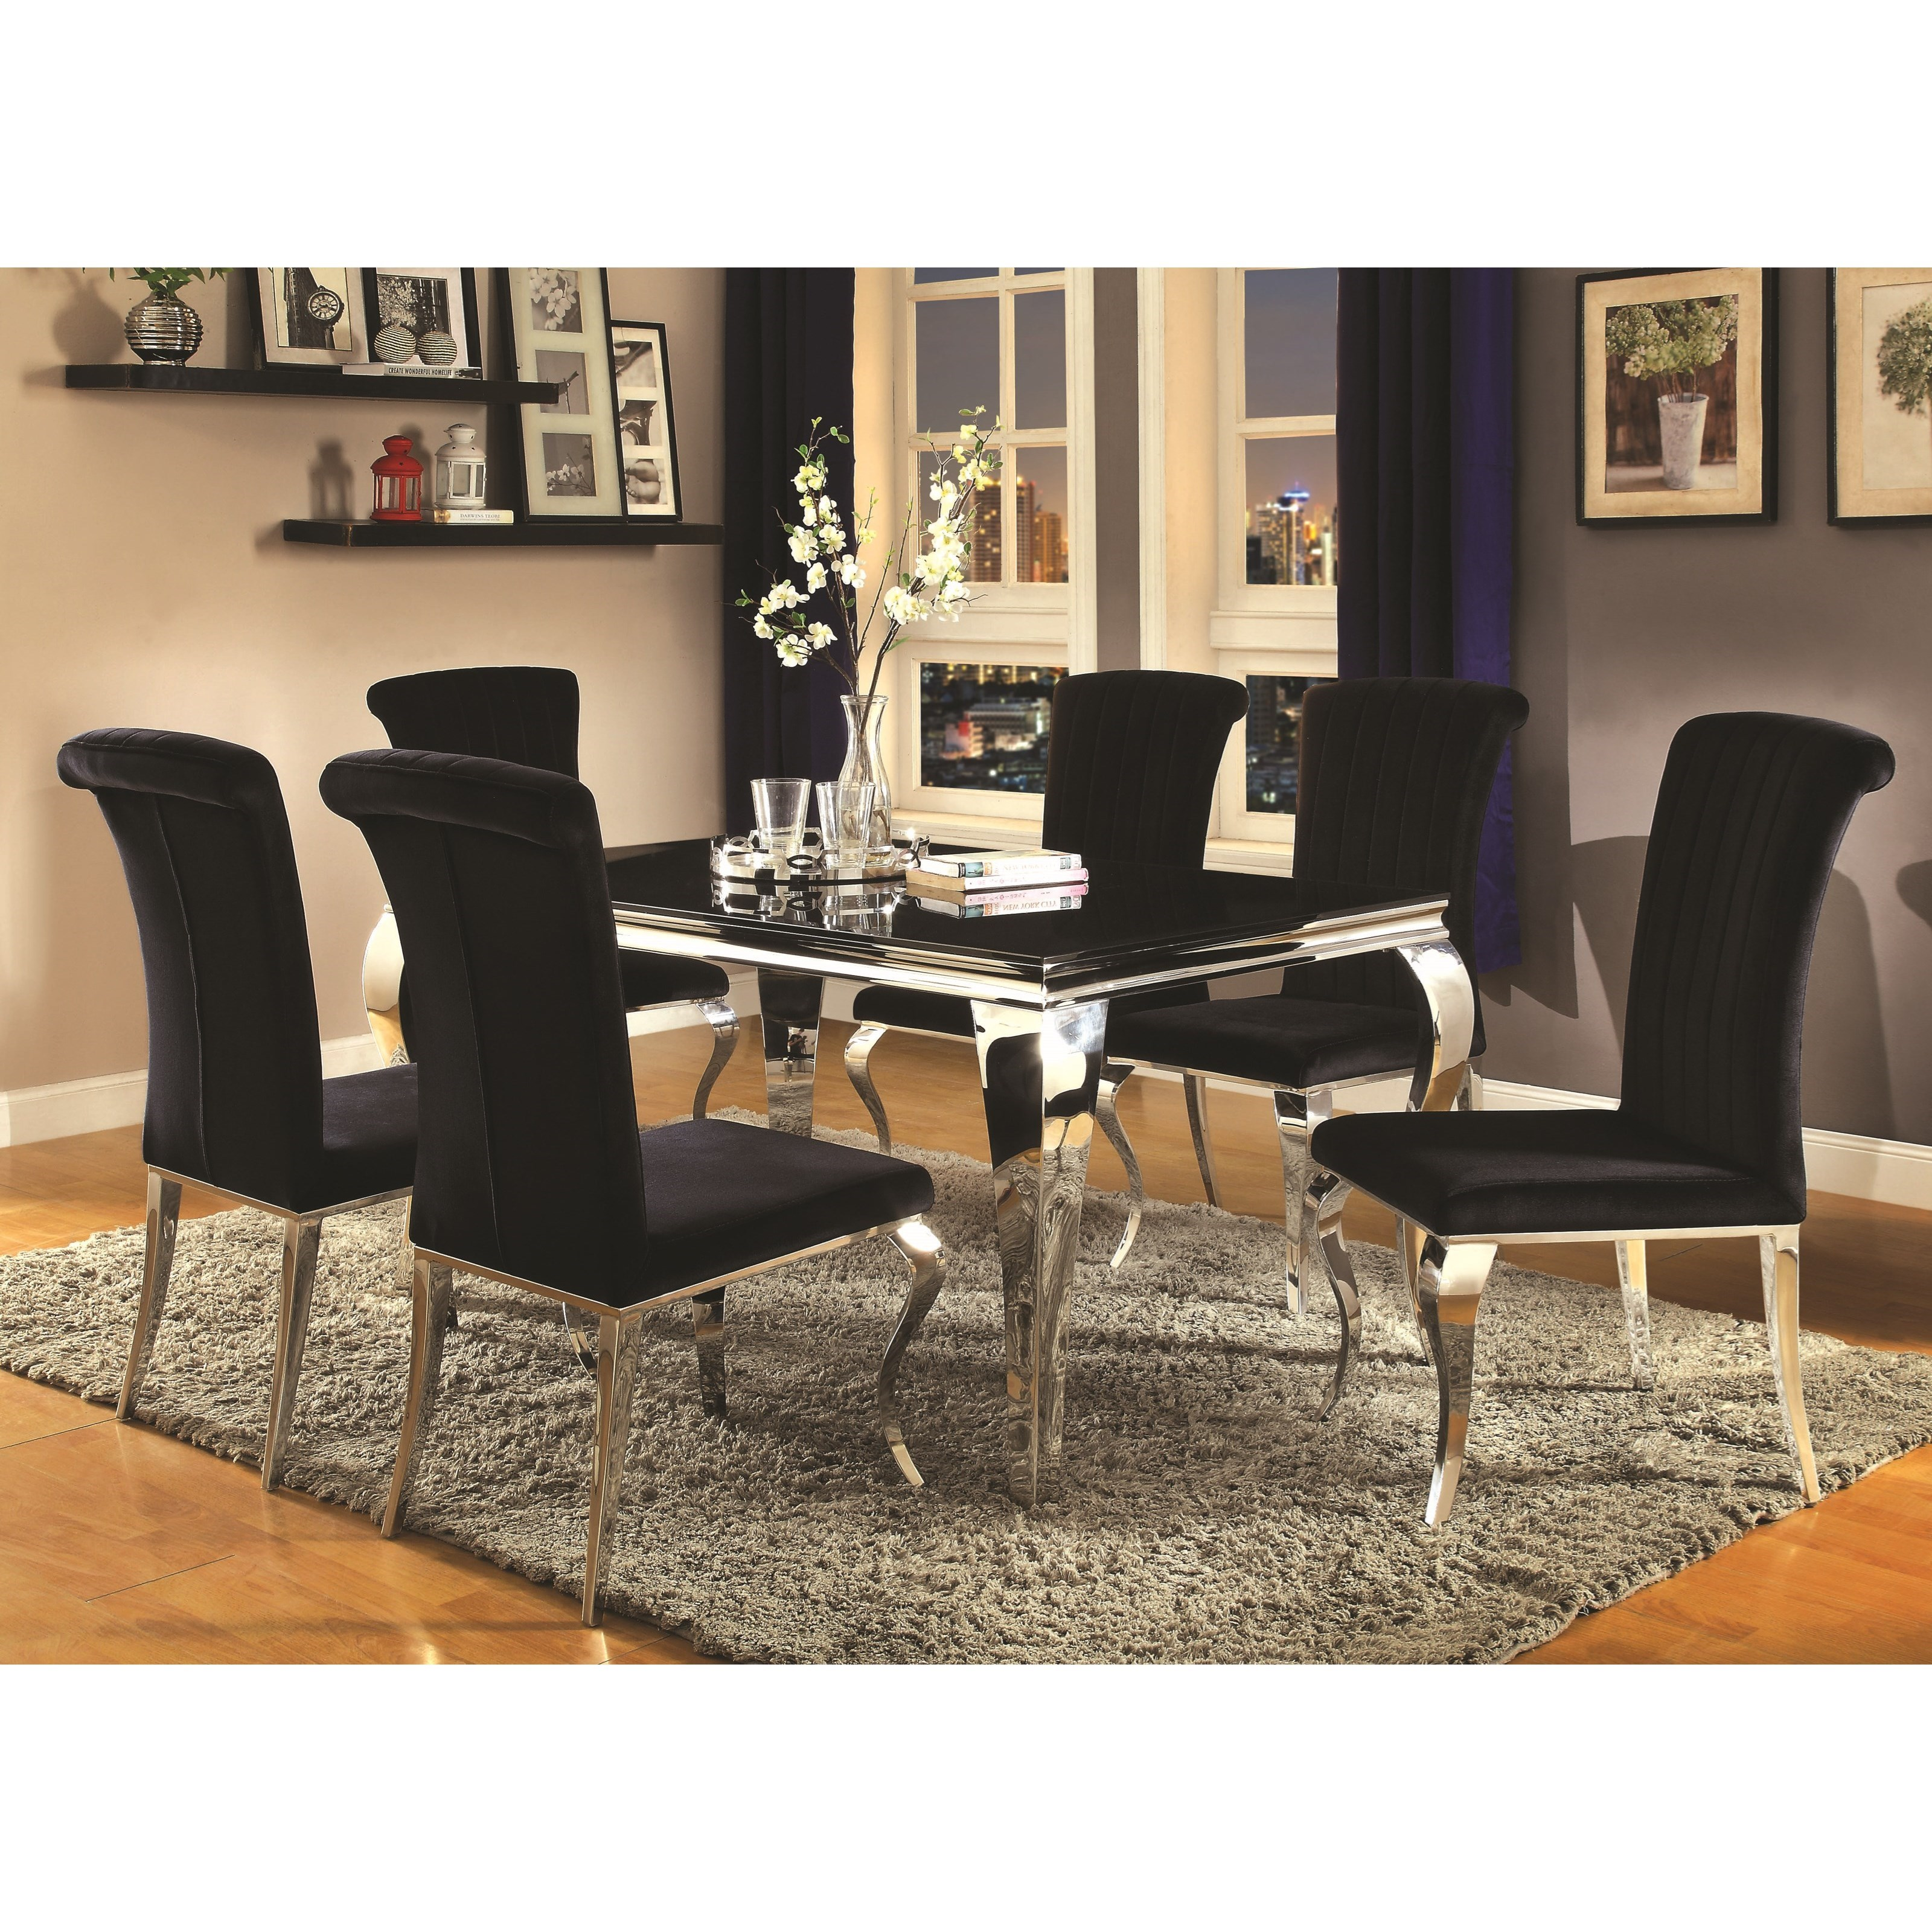 Carone Table and Chair Set by Coaster at Northeast Factory Direct